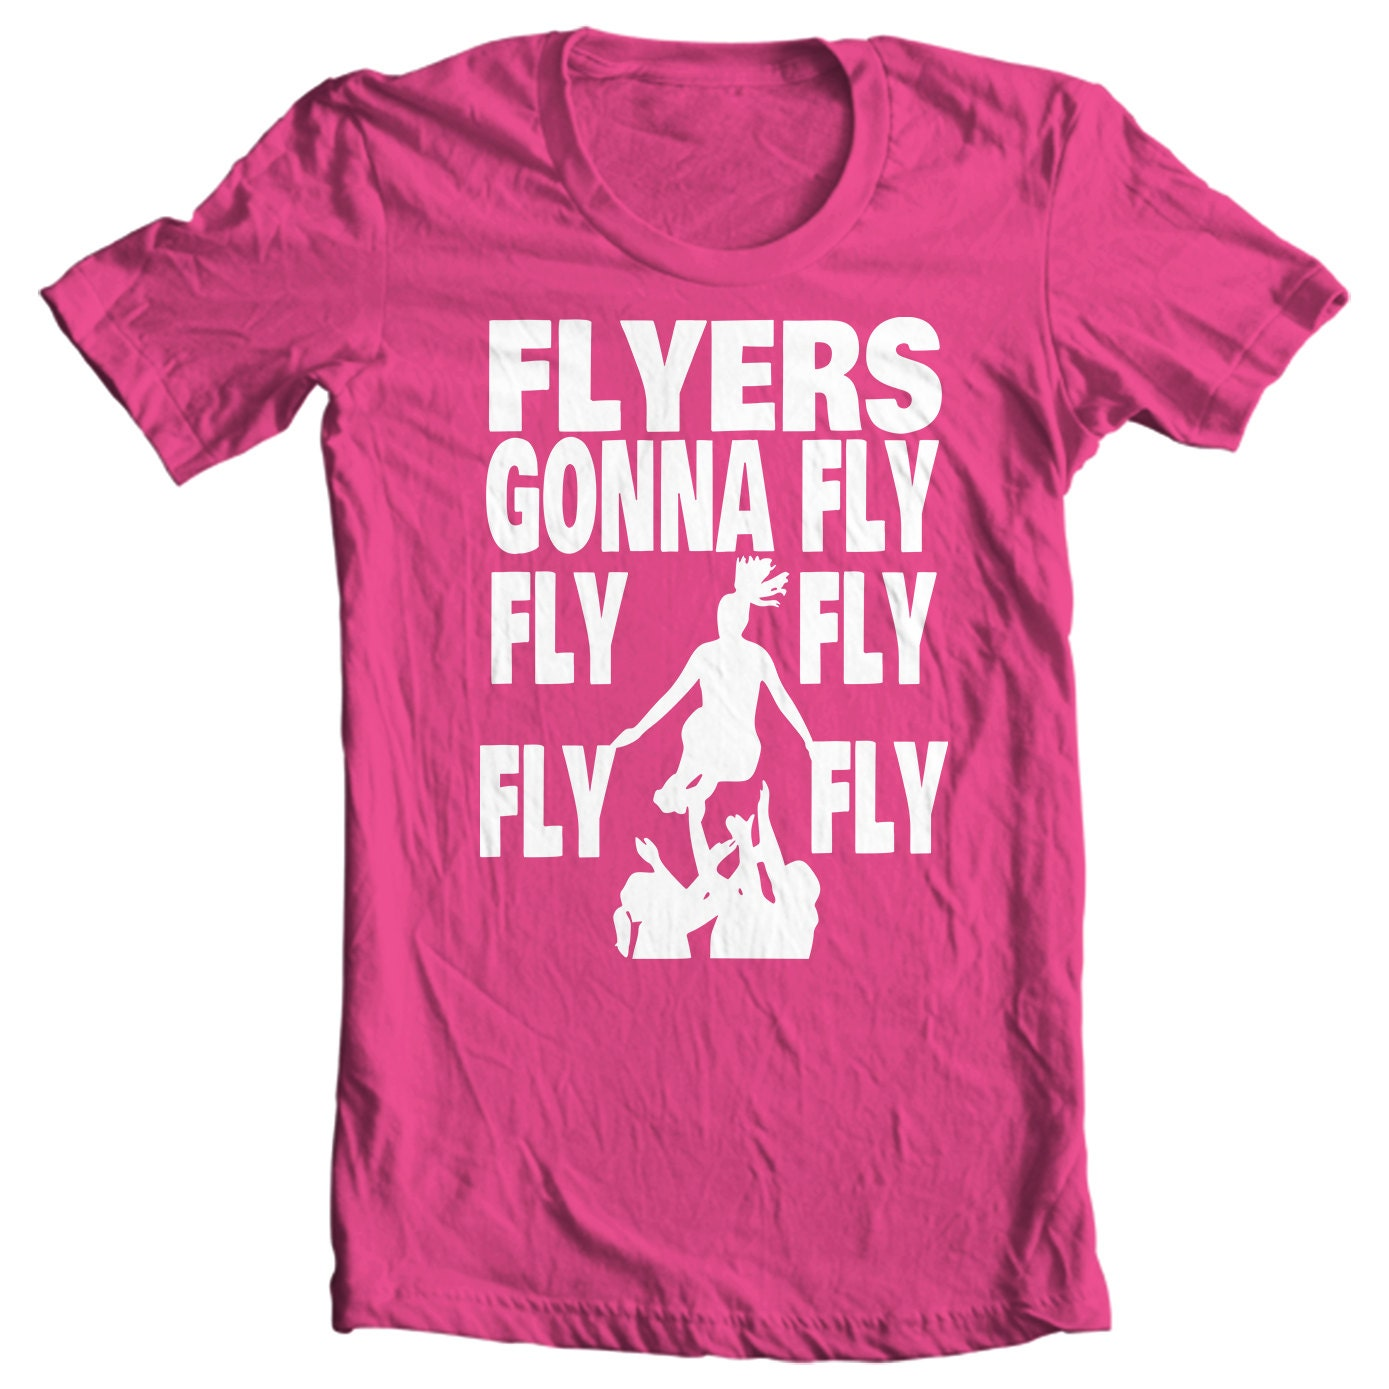 Cheer Life - Flyers Gonna Fly Girls T-Shirt